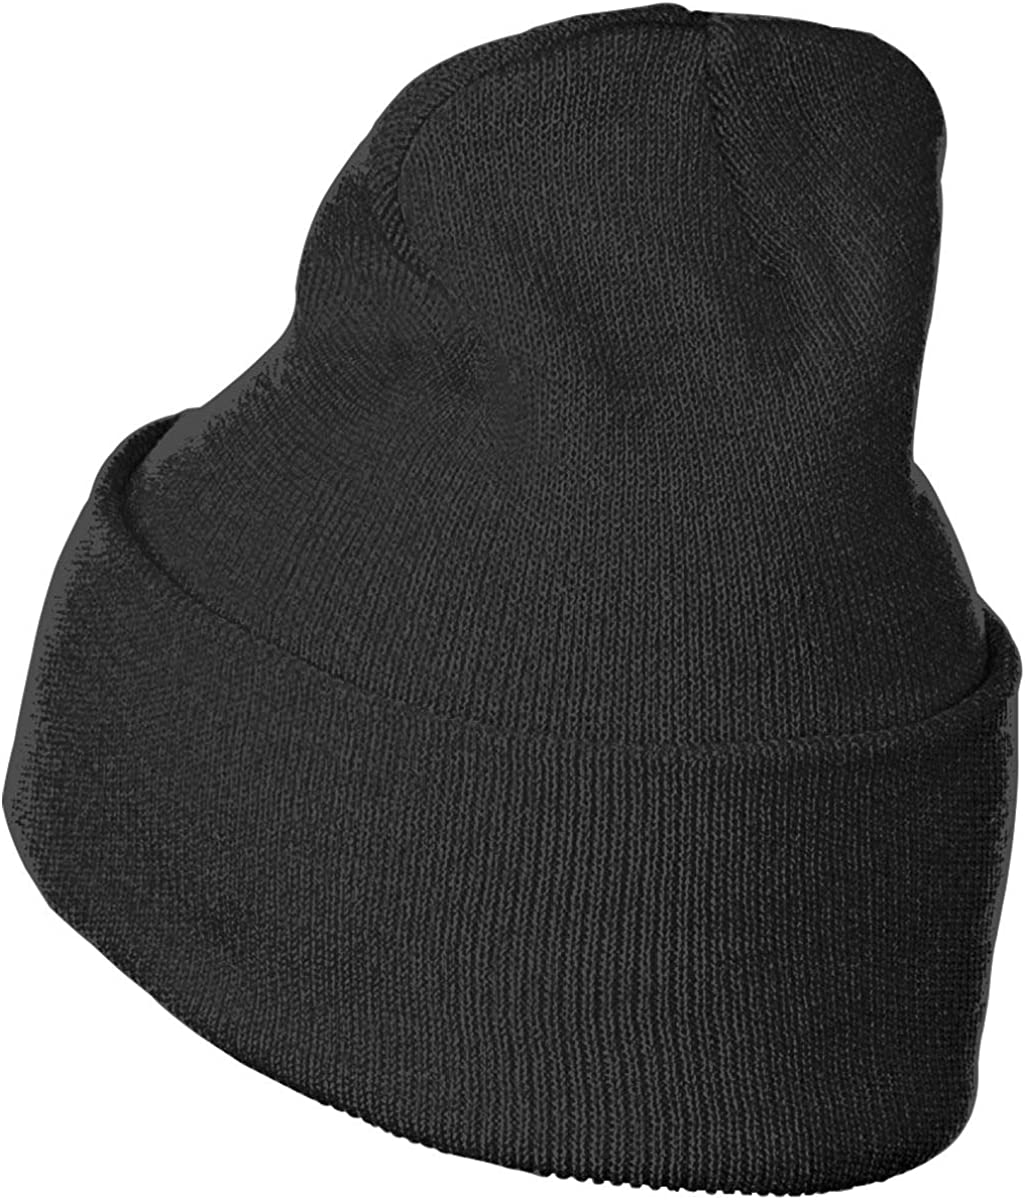 Barber Salon Hairdresser Love Men /& Women Knitting Hats Stretchy /& Soft Ski Cap Beanie